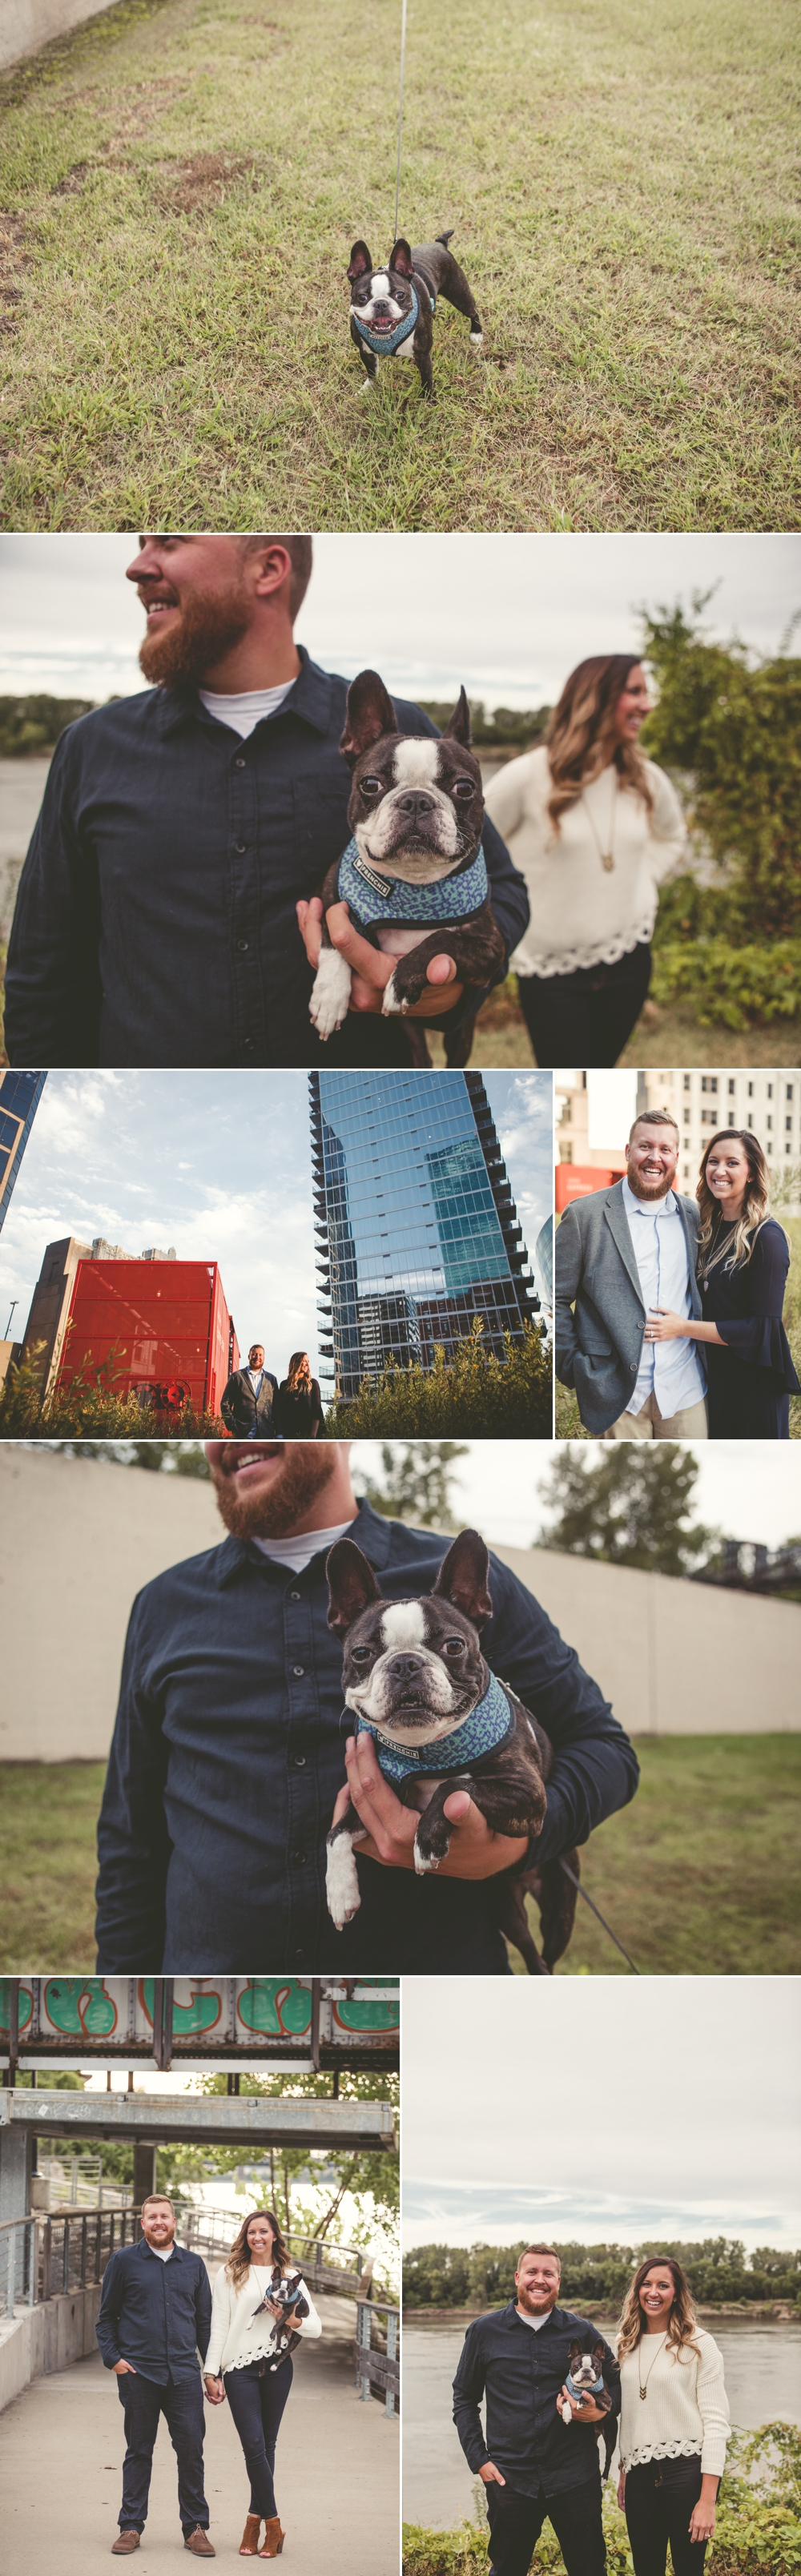 jason_domingues_photography_kansas_city_wedding_photographer_engaement_session_kc_0002.JPG